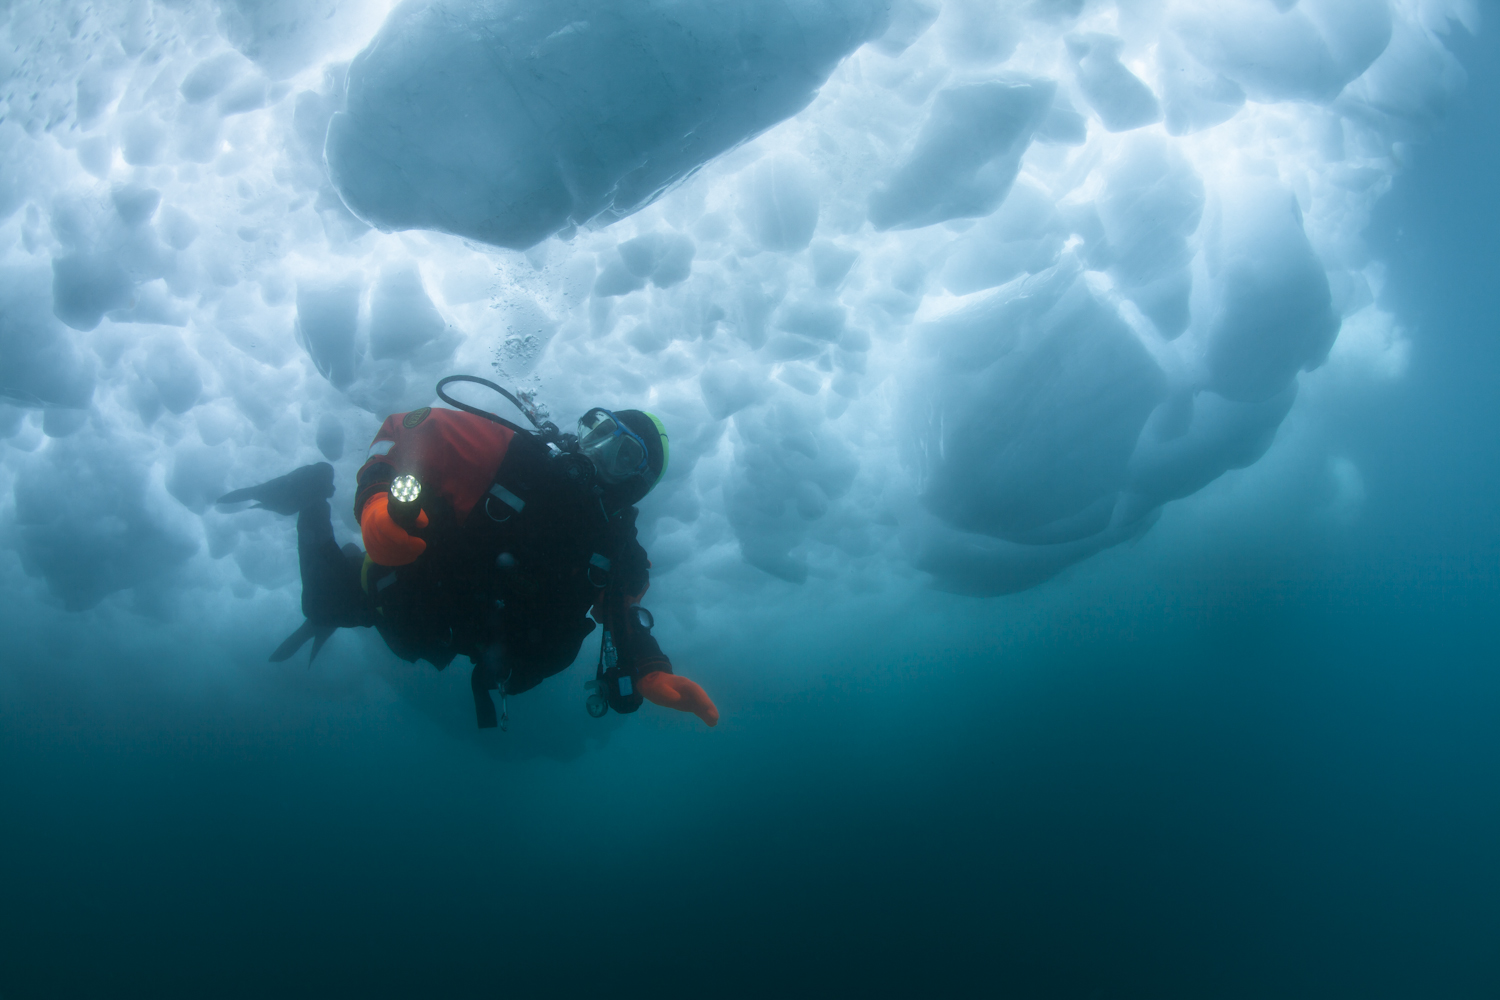 Jorgen, dressed in his dry suit and specialized arctic diving gear, peers through an ice sheet around looming icebergs. In 0.8ºC water in Disko Bay, Greenland, the underwater world holds unseen mysteries and surprises. #70degreeswest #justinlewisphotography unseen mysteries and surprises. #70degreeswest #justinlewisphotography